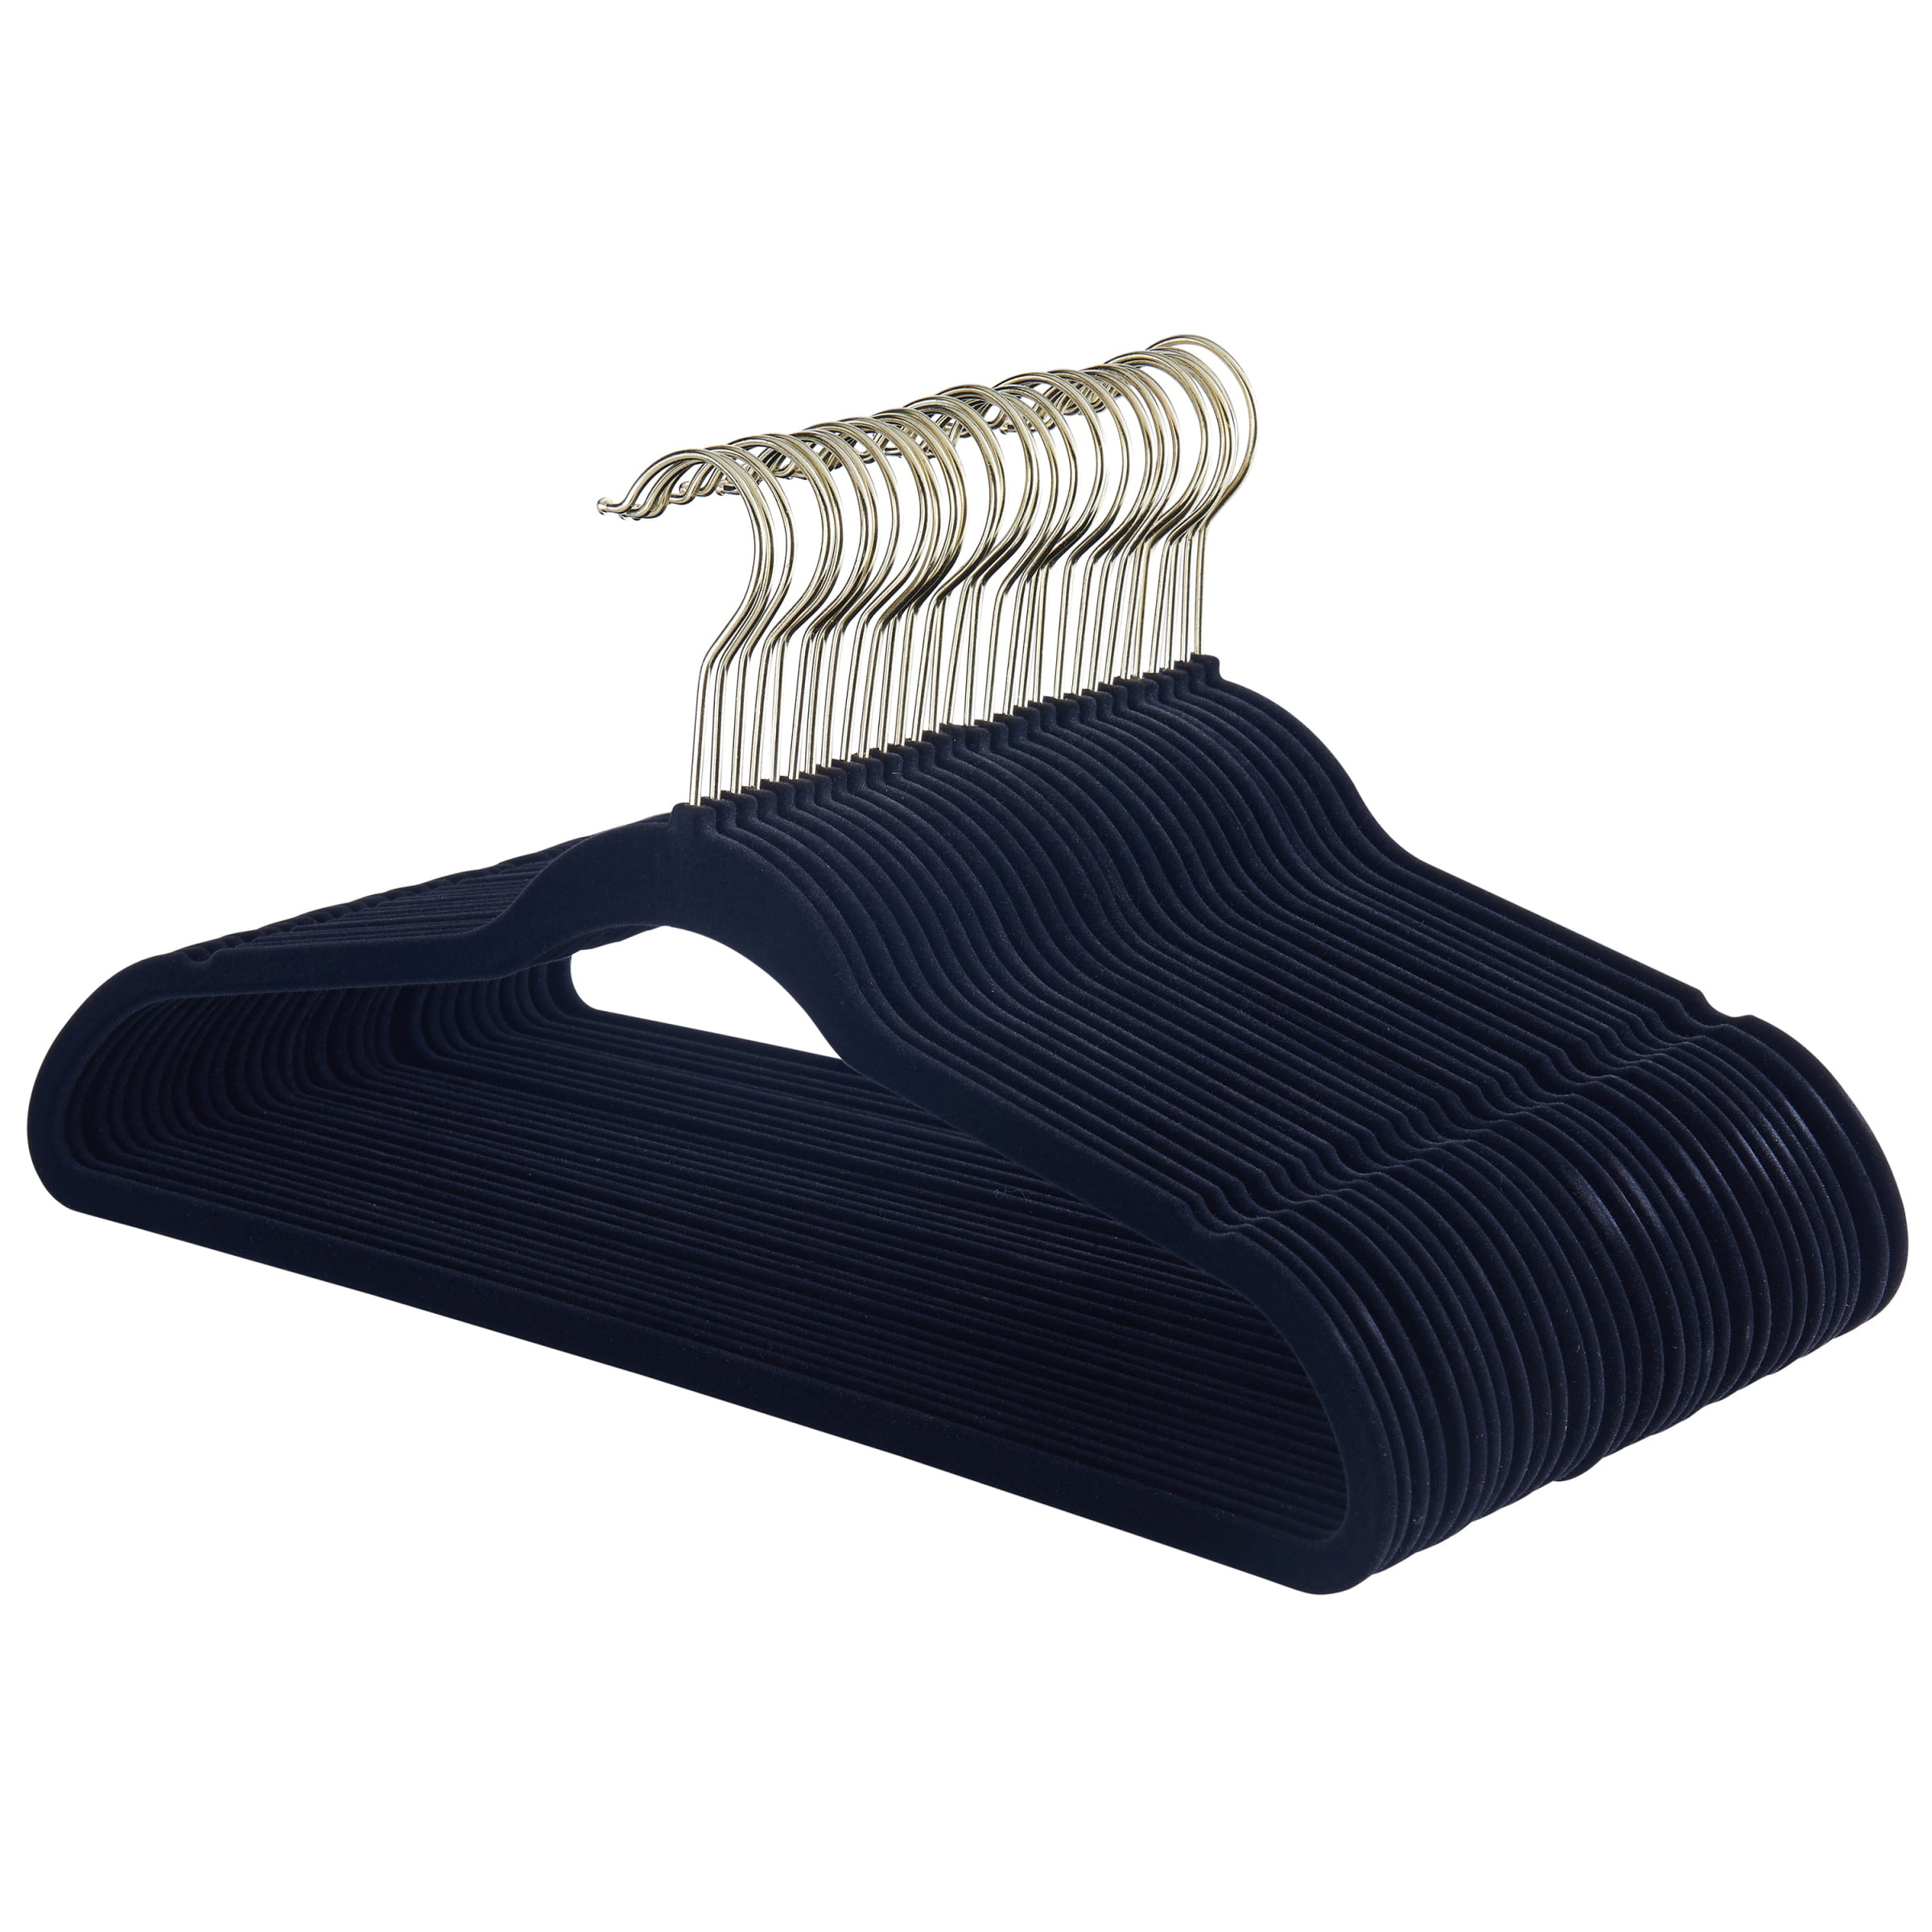 Blue Children Kids Hangers Velvet Slim and Sturdy Design Non-Slip Pack of 30